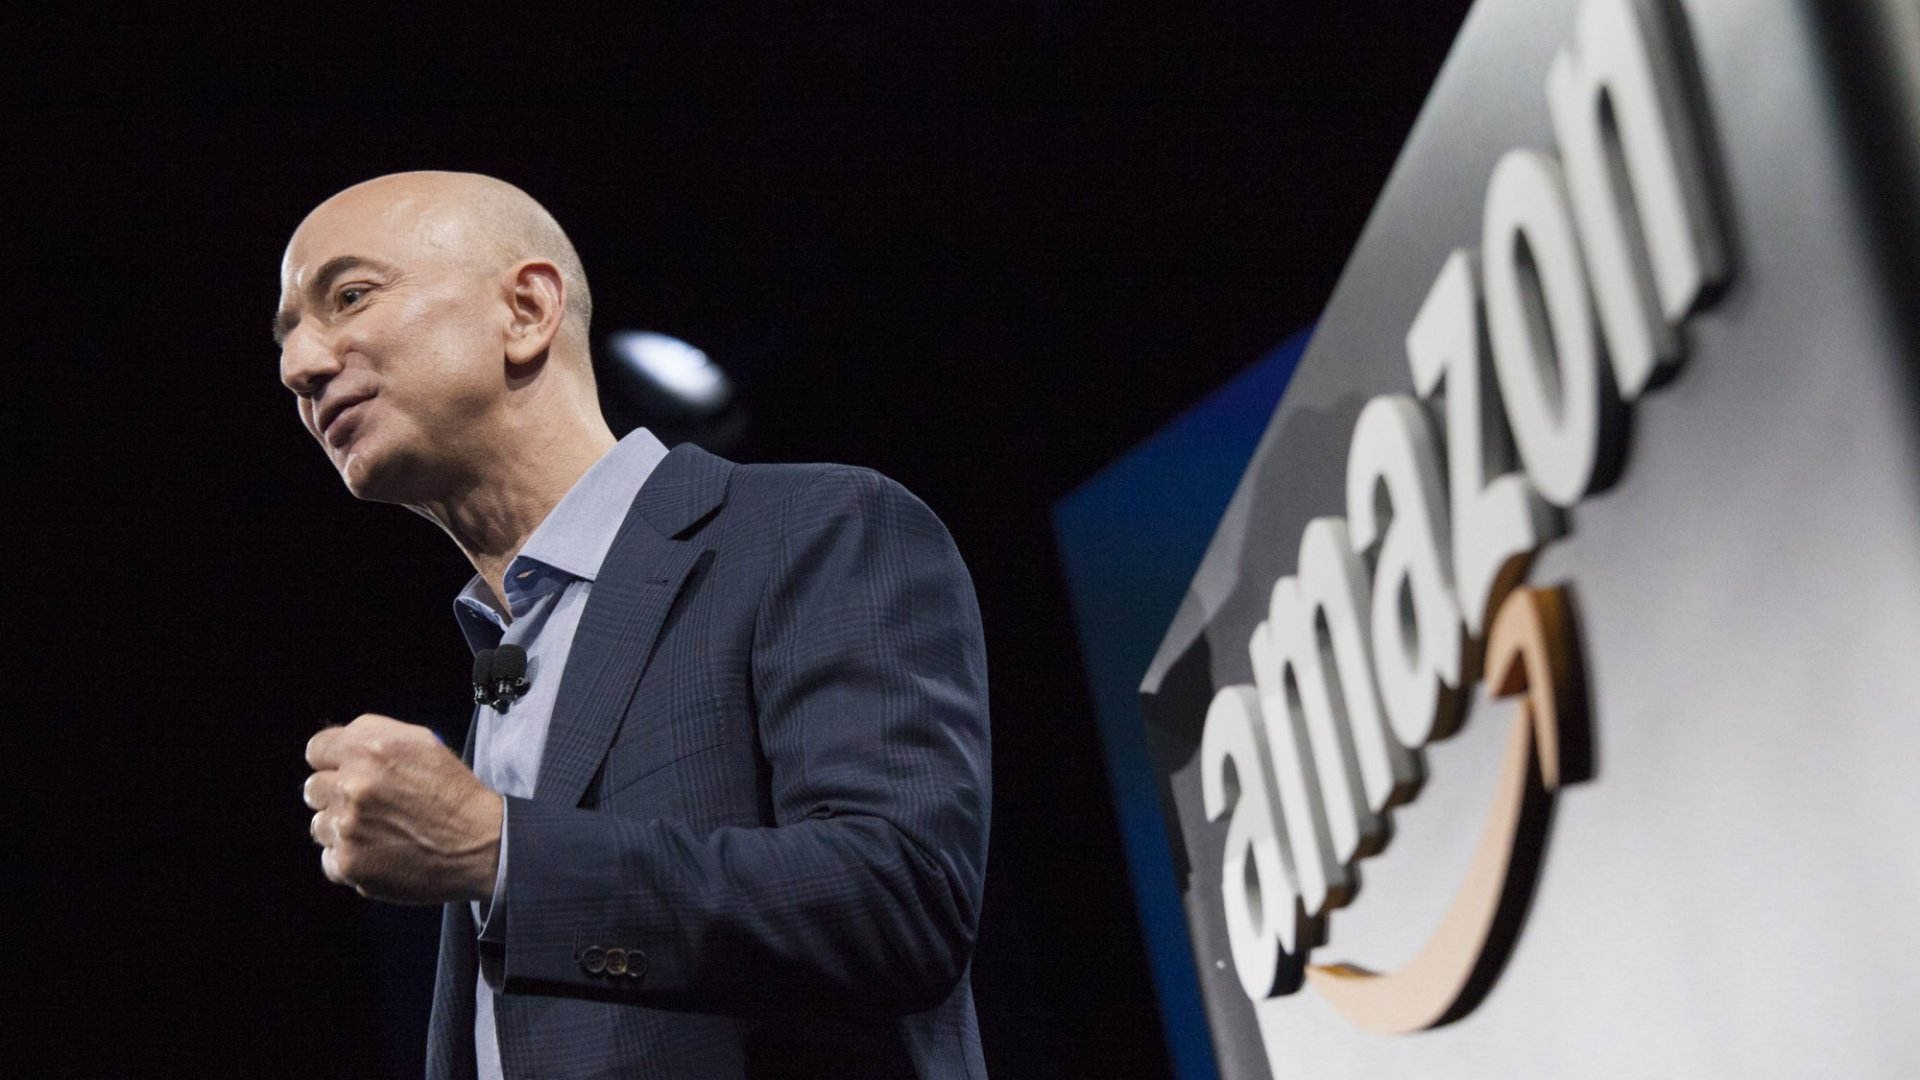 If Jeff Bezos Wants to Make America Better (and He Does), This Is Where He Should Bring Amazon